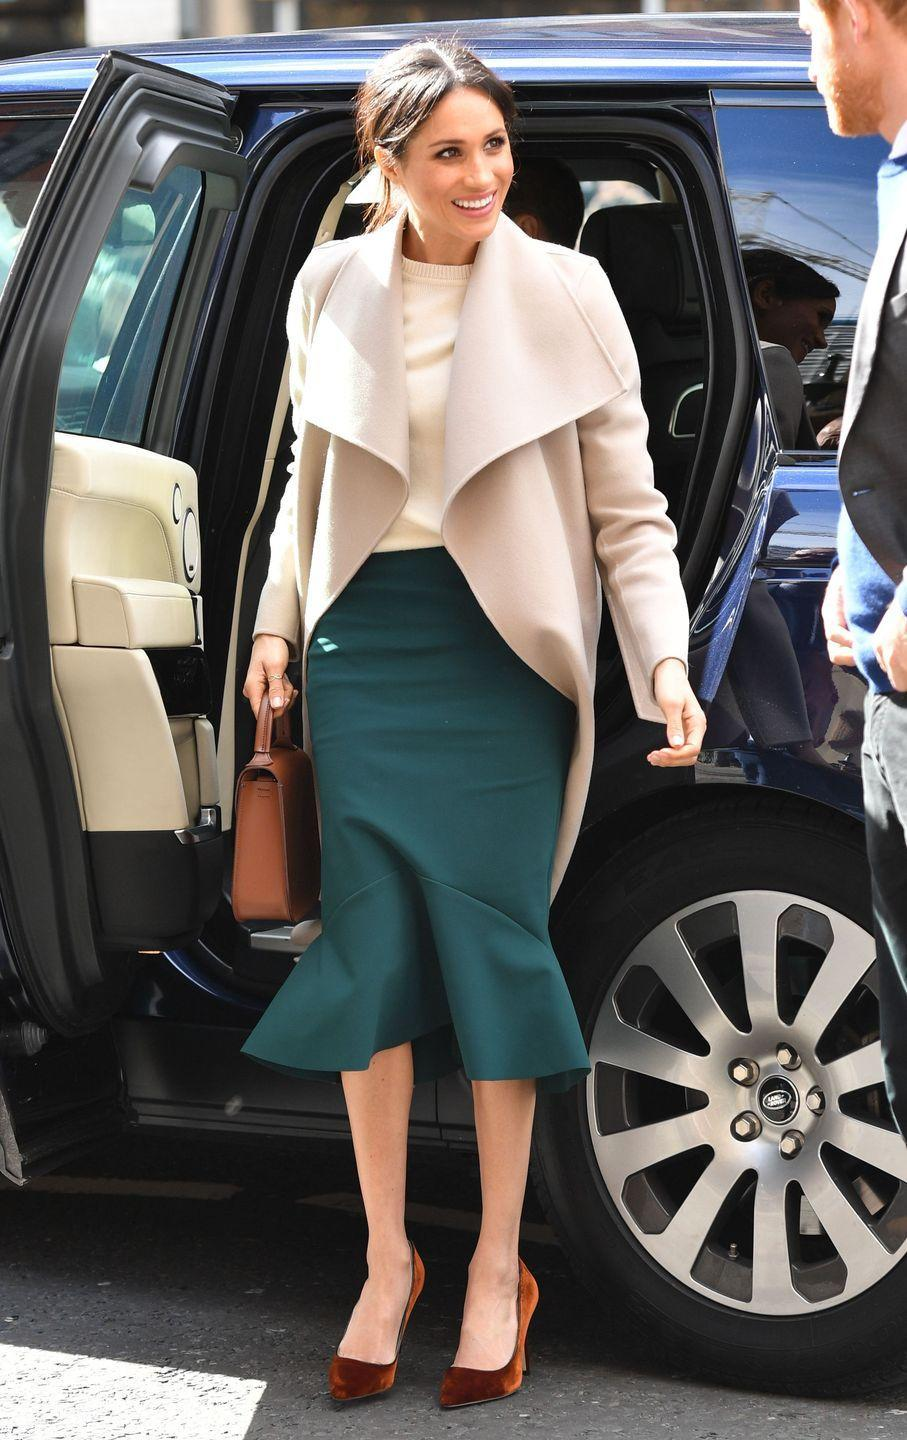 """<p>Speaking of bodysuits, <a href=""""https://www.thesun.co.uk/fabulous/7015284/duchess-effect-etiquette-secret-item-meghan-markle-kate-middleton-dresses-flashing-knickers/"""" rel=""""nofollow noopener"""" target=""""_blank"""" data-ylk=""""slk:etiquette expert Myka Meier said in an interview with The Sun"""" class=""""link rapid-noclick-resp"""">etiquette expert Myka Meier said in an interview with <em>The Sun</em></a> that Kate and Meghan often """"wear bodysuits and clothes that actually increase static so it's much hard[er] for something to fly up."""" Does this mean they're constantly giving each other static shocks or...? </p>"""